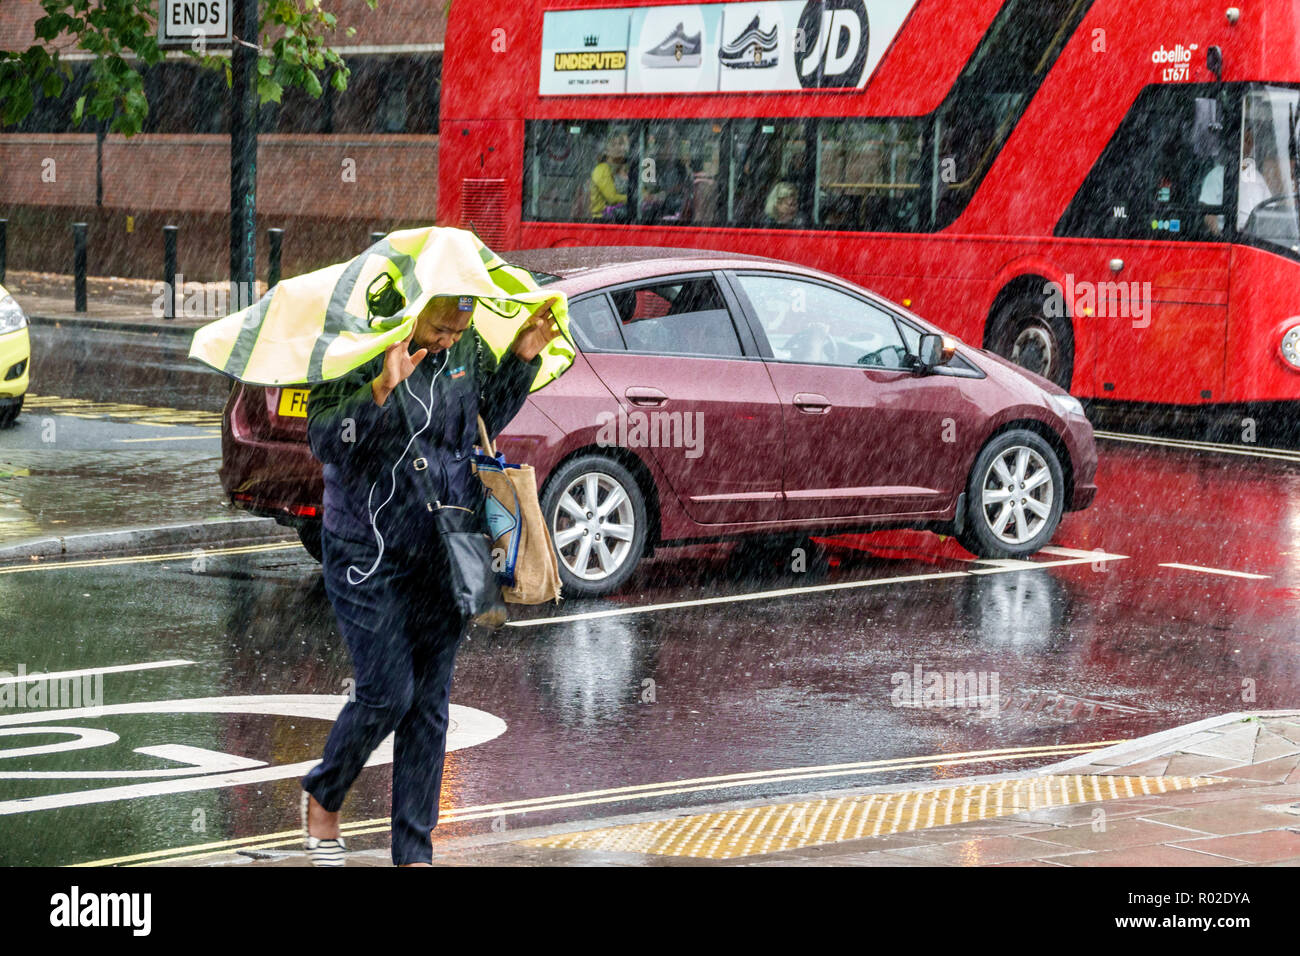 London England United Kingdom Great Britain Lambeth South Bank raining rainy weather wet pavement pedestrian crossing traffic Black woman covering hea - Stock Image